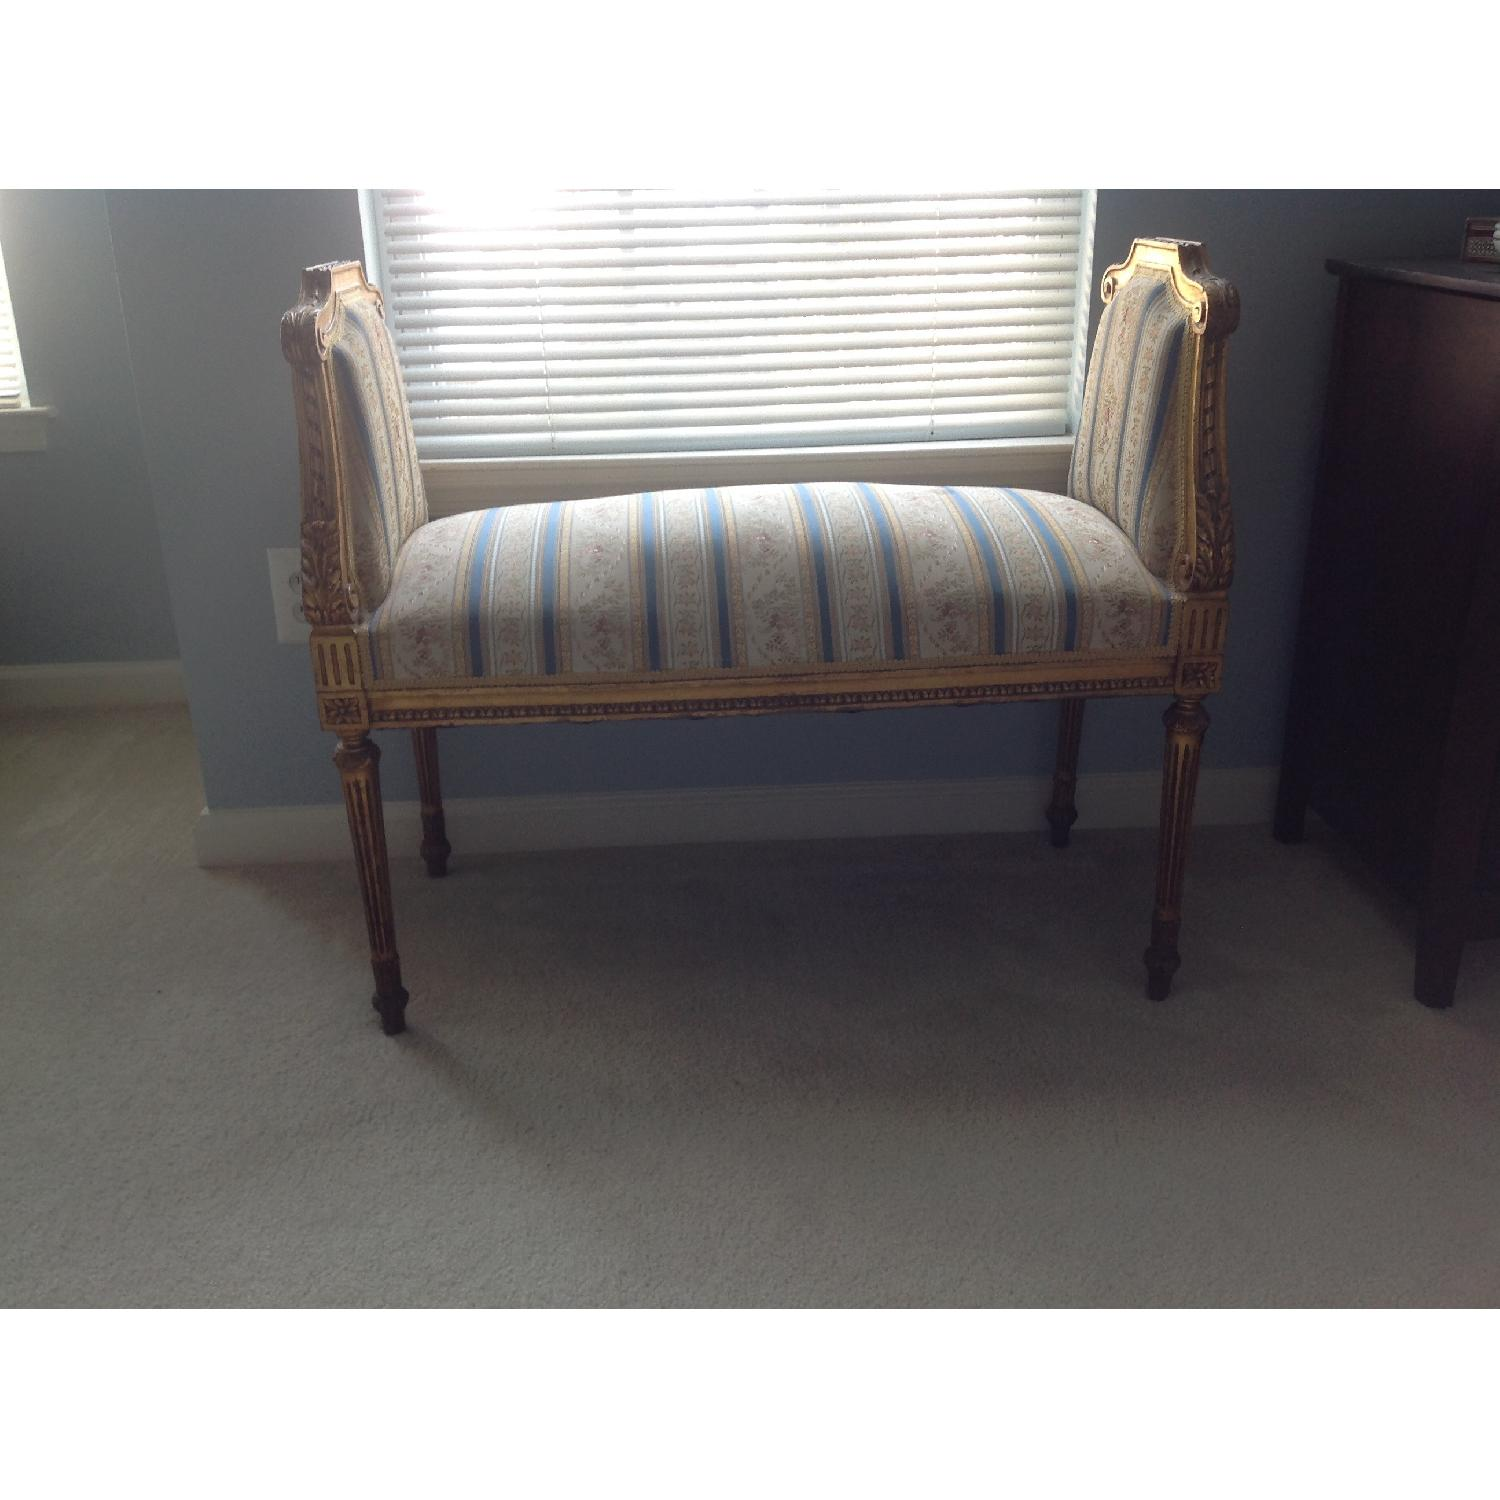 French Style Upholstered Bench-0